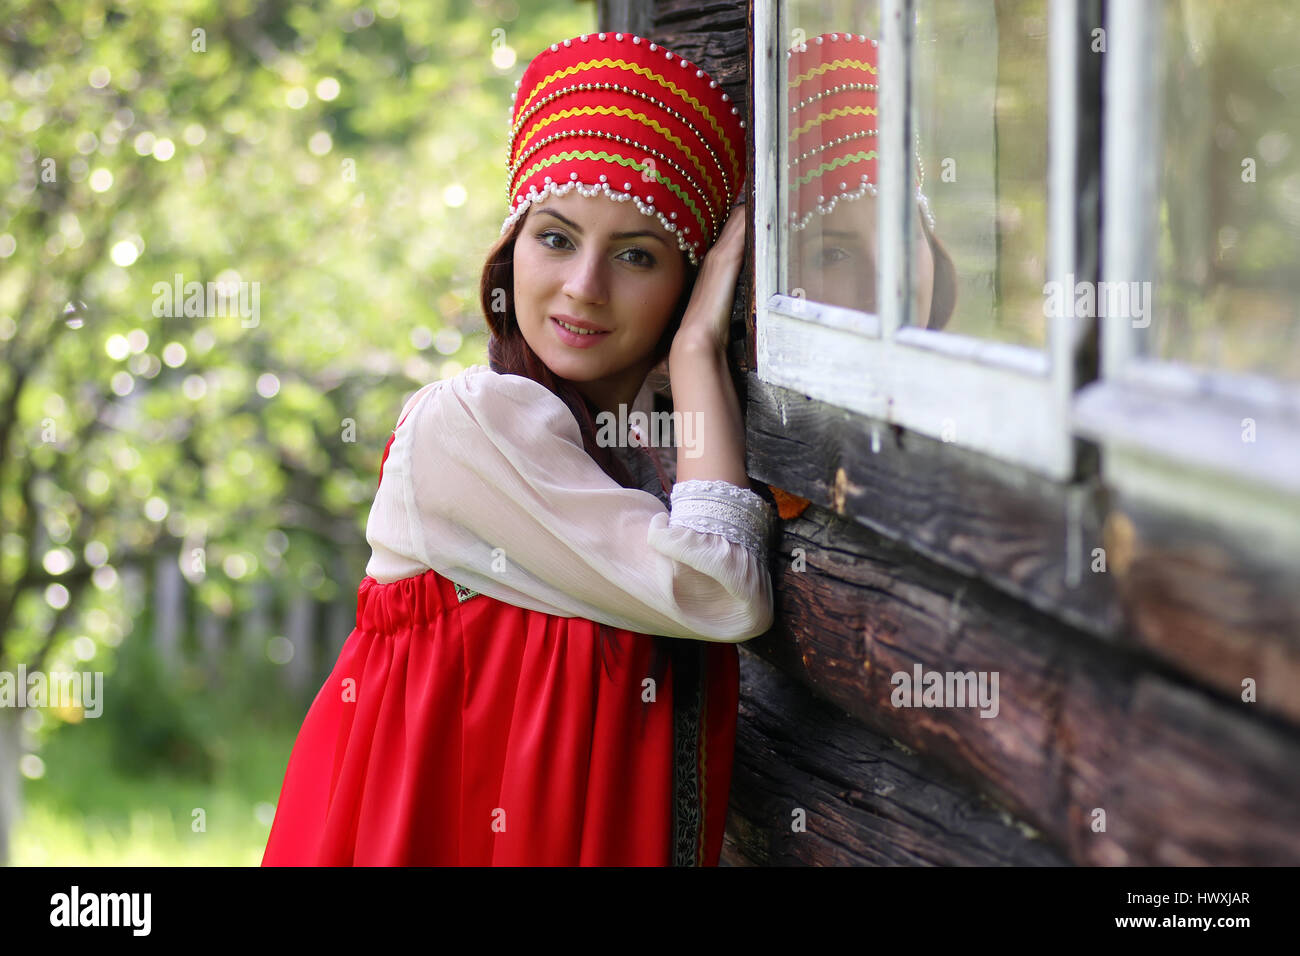 Slav woman in traditional dress wooden wall - Stock Image